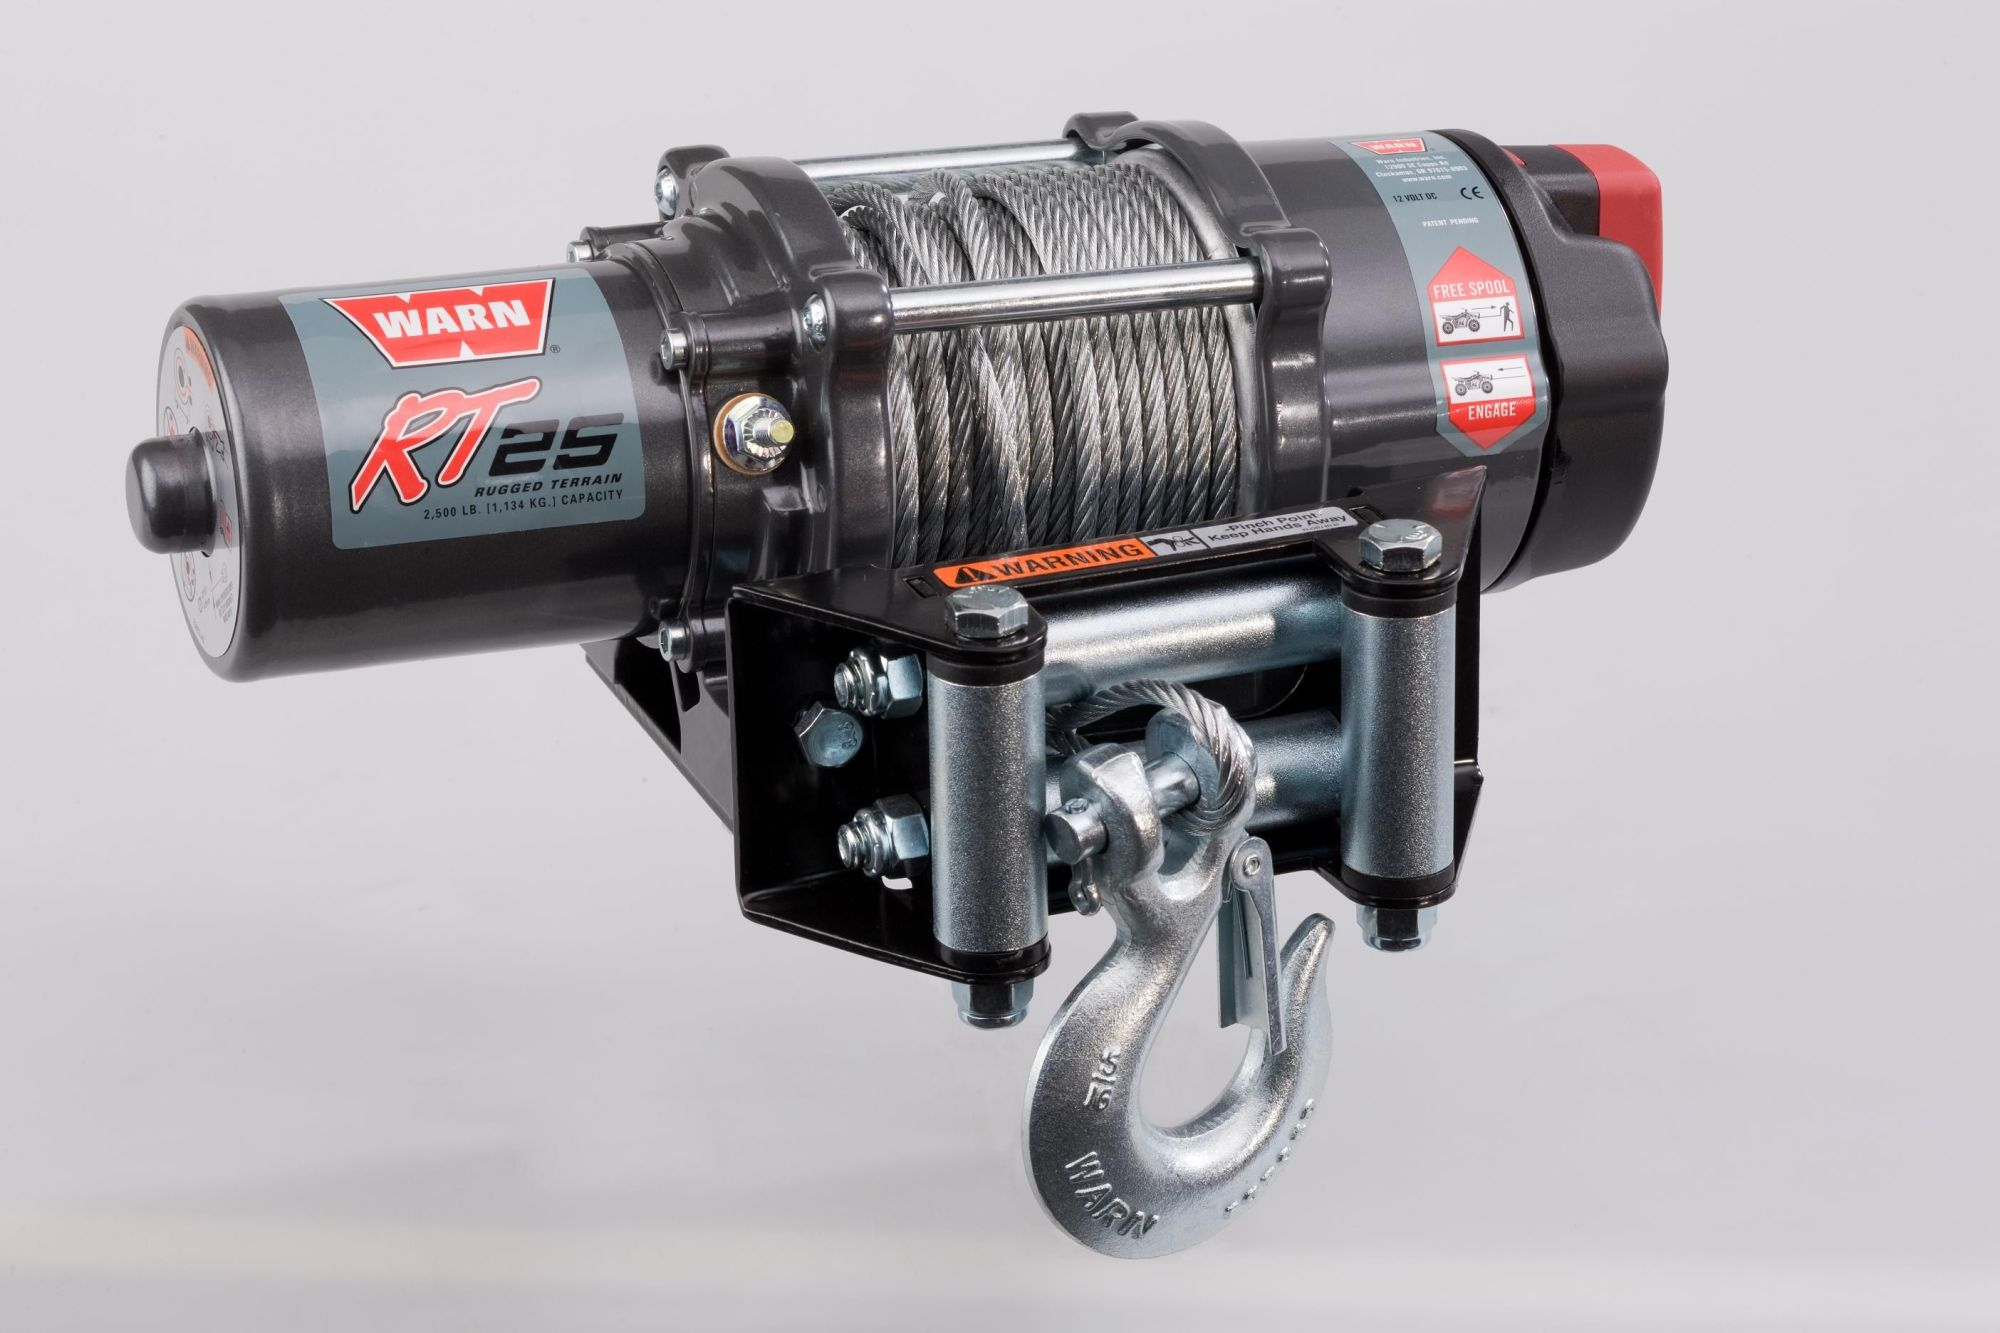 hight resolution of winch warn 2500lb 1134kg previous